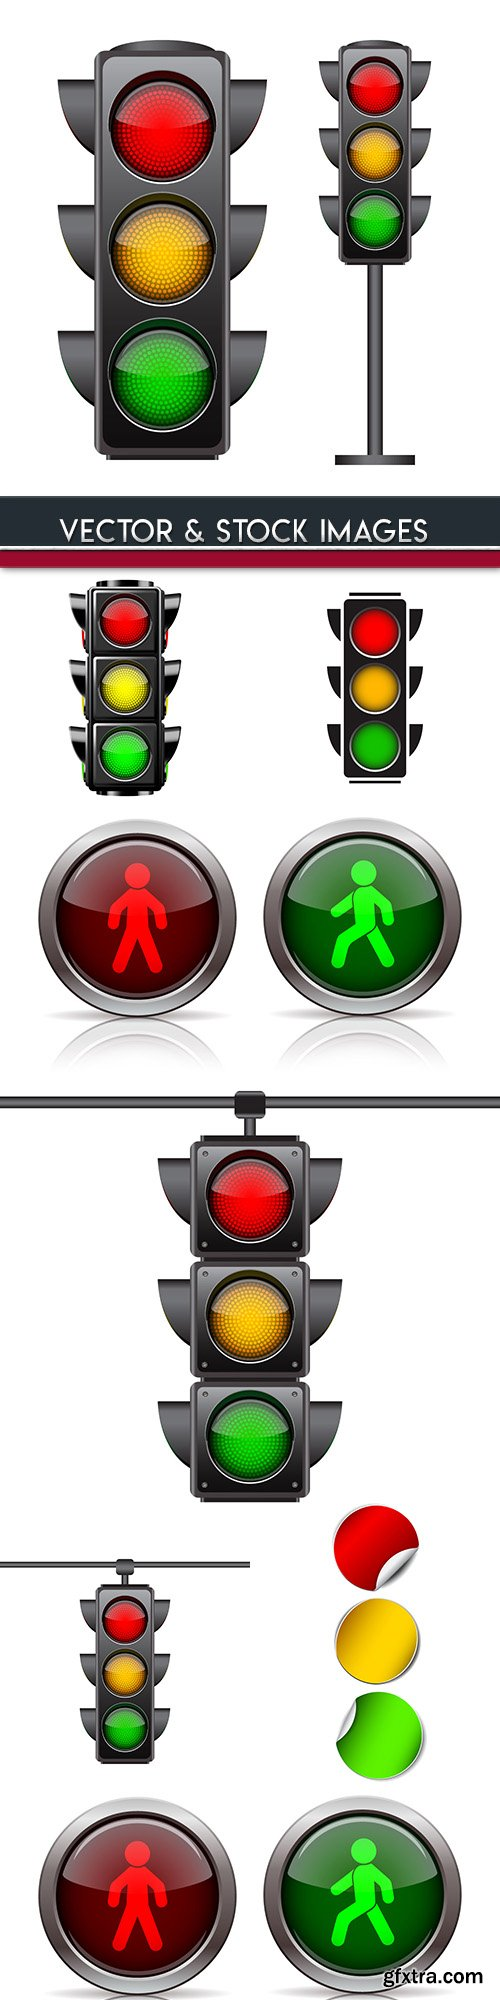 Traffic light and road signs 3d illustrations